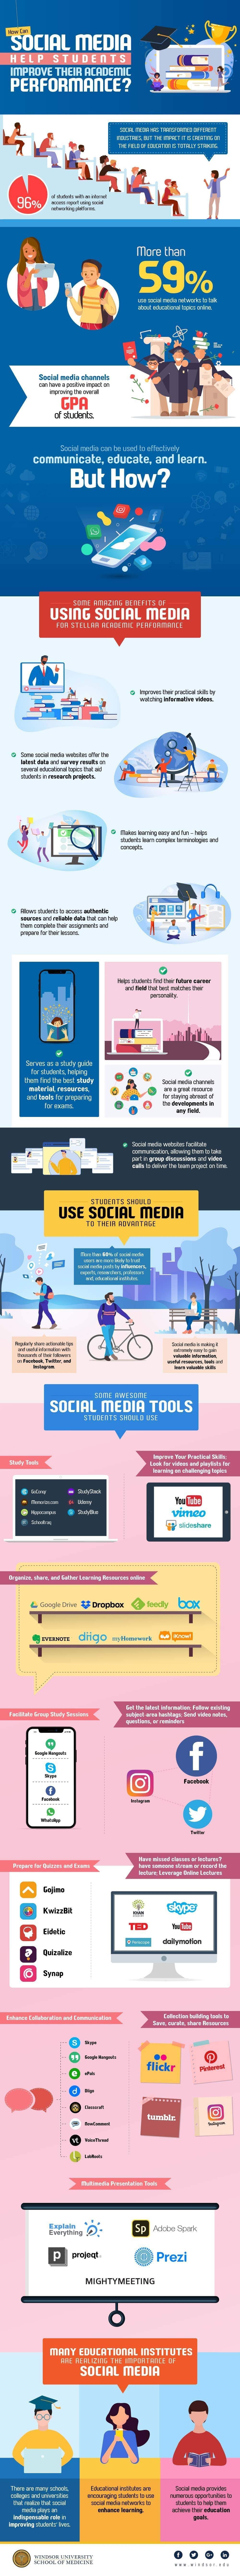 How can students improve their academic performance in social media? #infographic